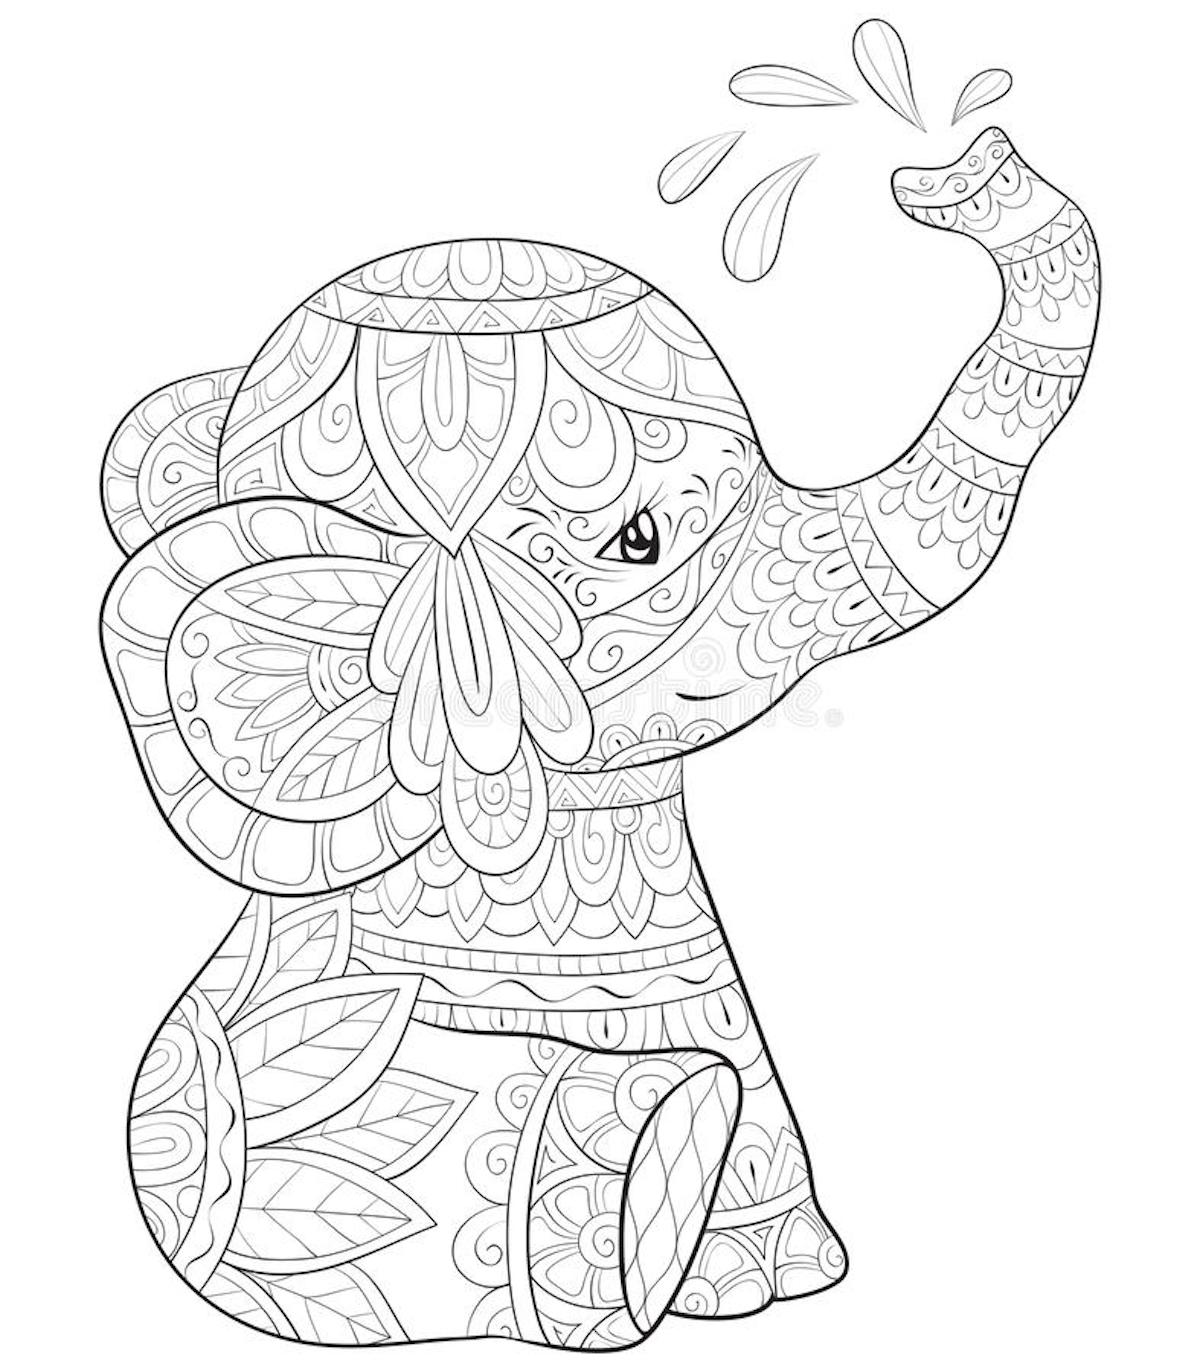 Printable Cute Coloring Pages For Adults And Other Top 18 Color Themes